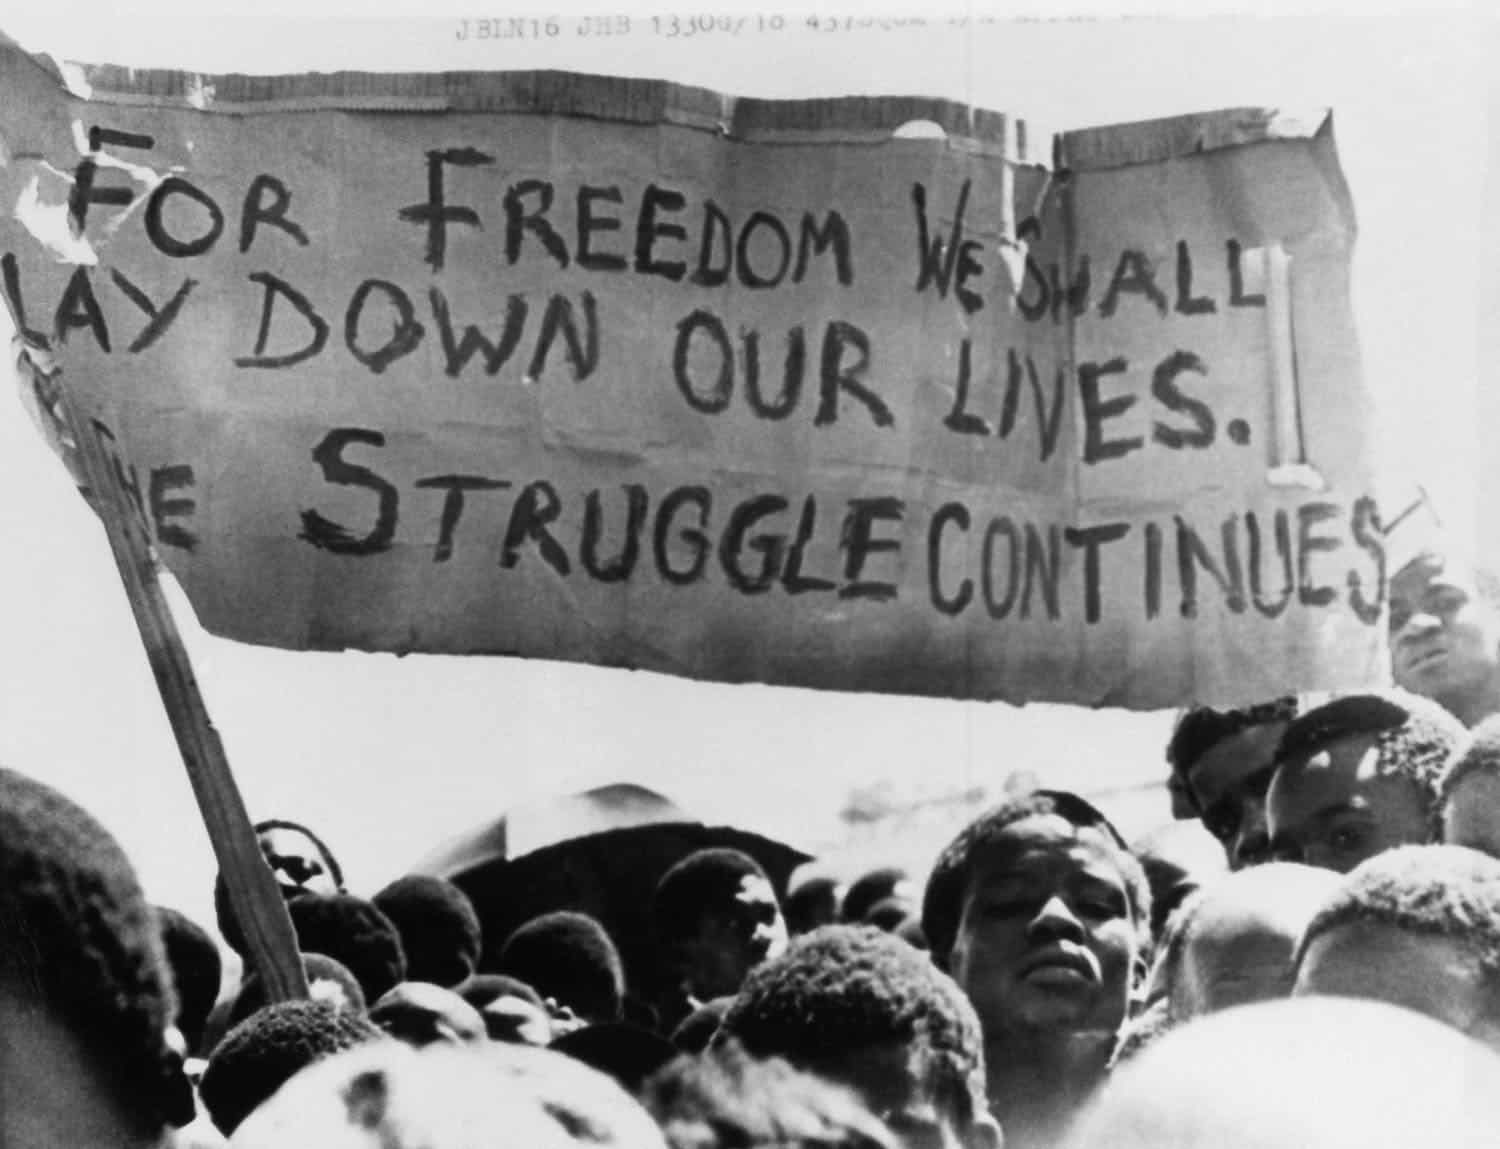 """An African holds a sign that says """"For freedom we shall lay down our lives. The struggle continues"""""""